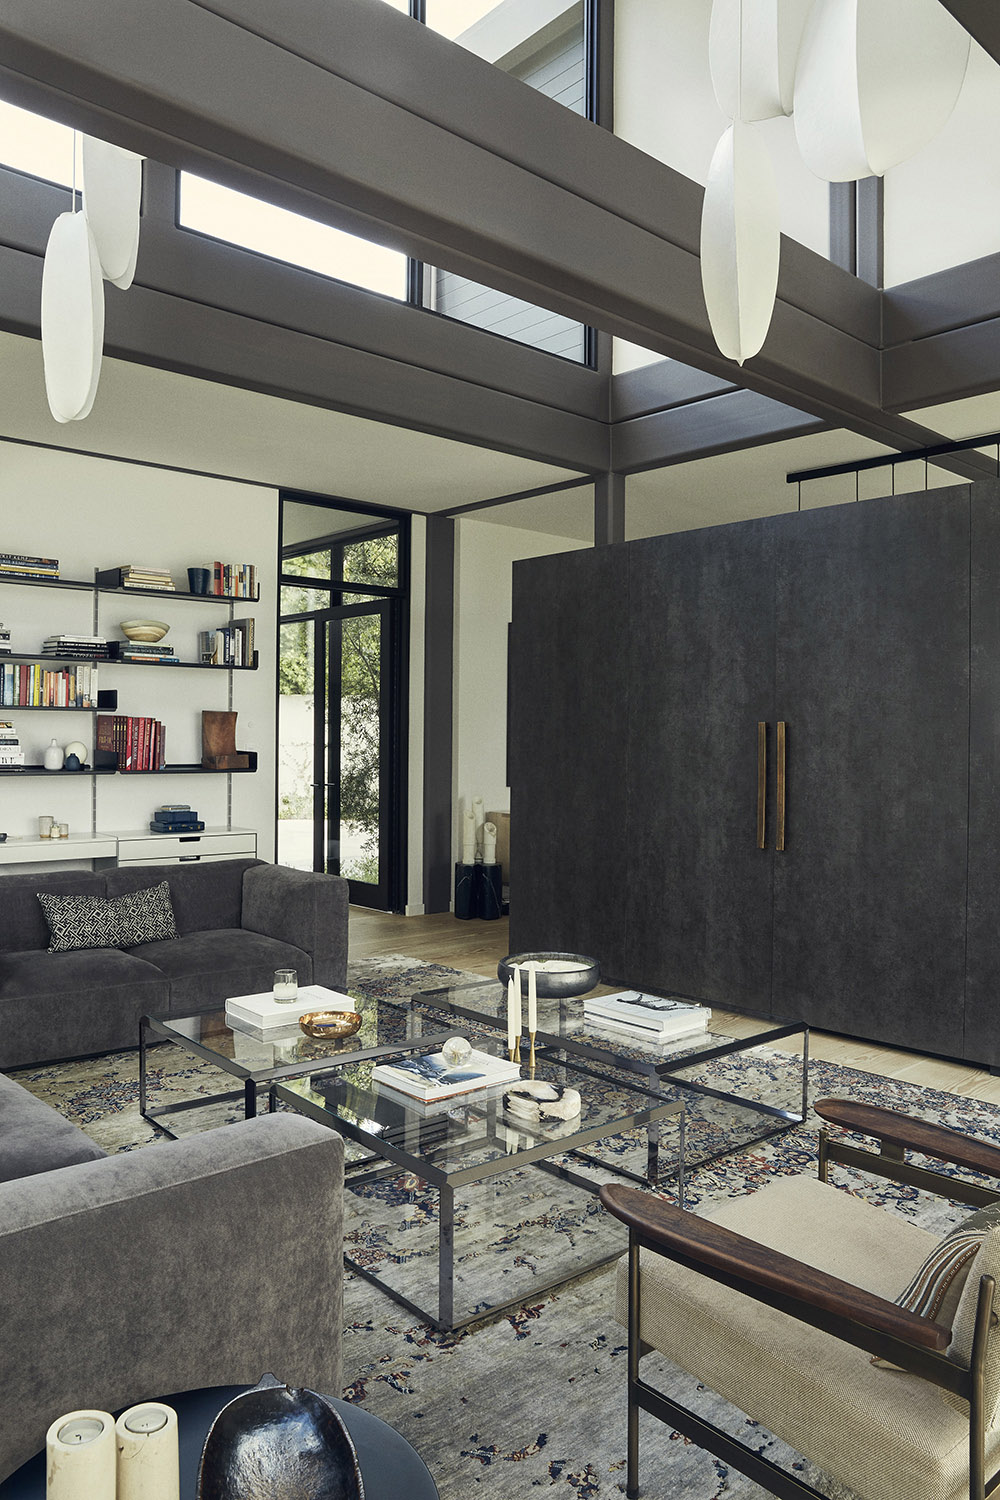 In the living area, Mori pendants by Rich Brilliant Willing hang above an Erased Heritage rug by Jan Kath. Miller Mobley